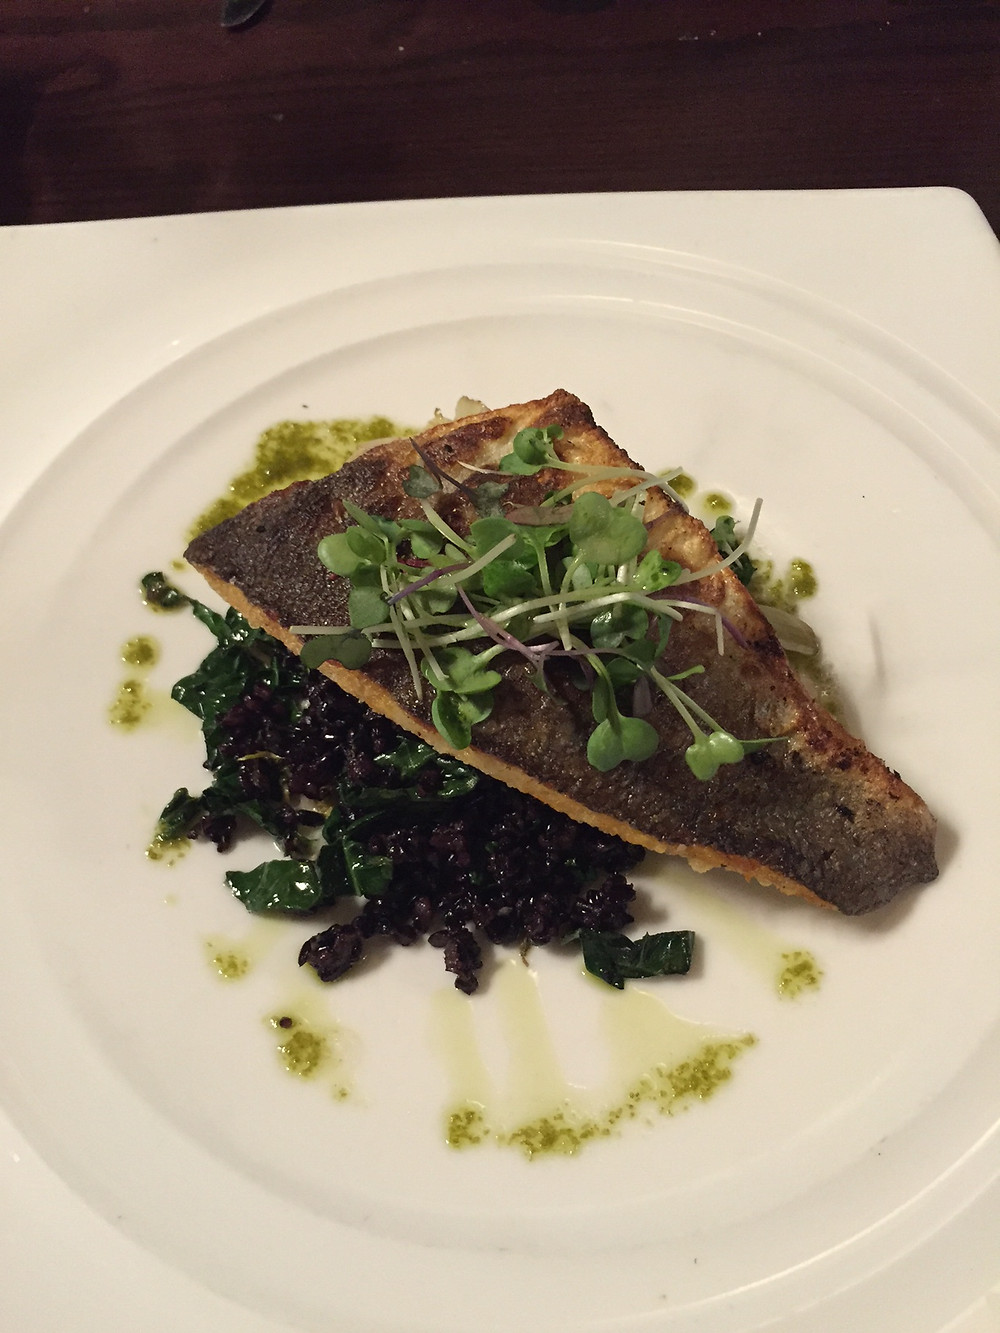 A piece of fish beautifully presented on a white dish